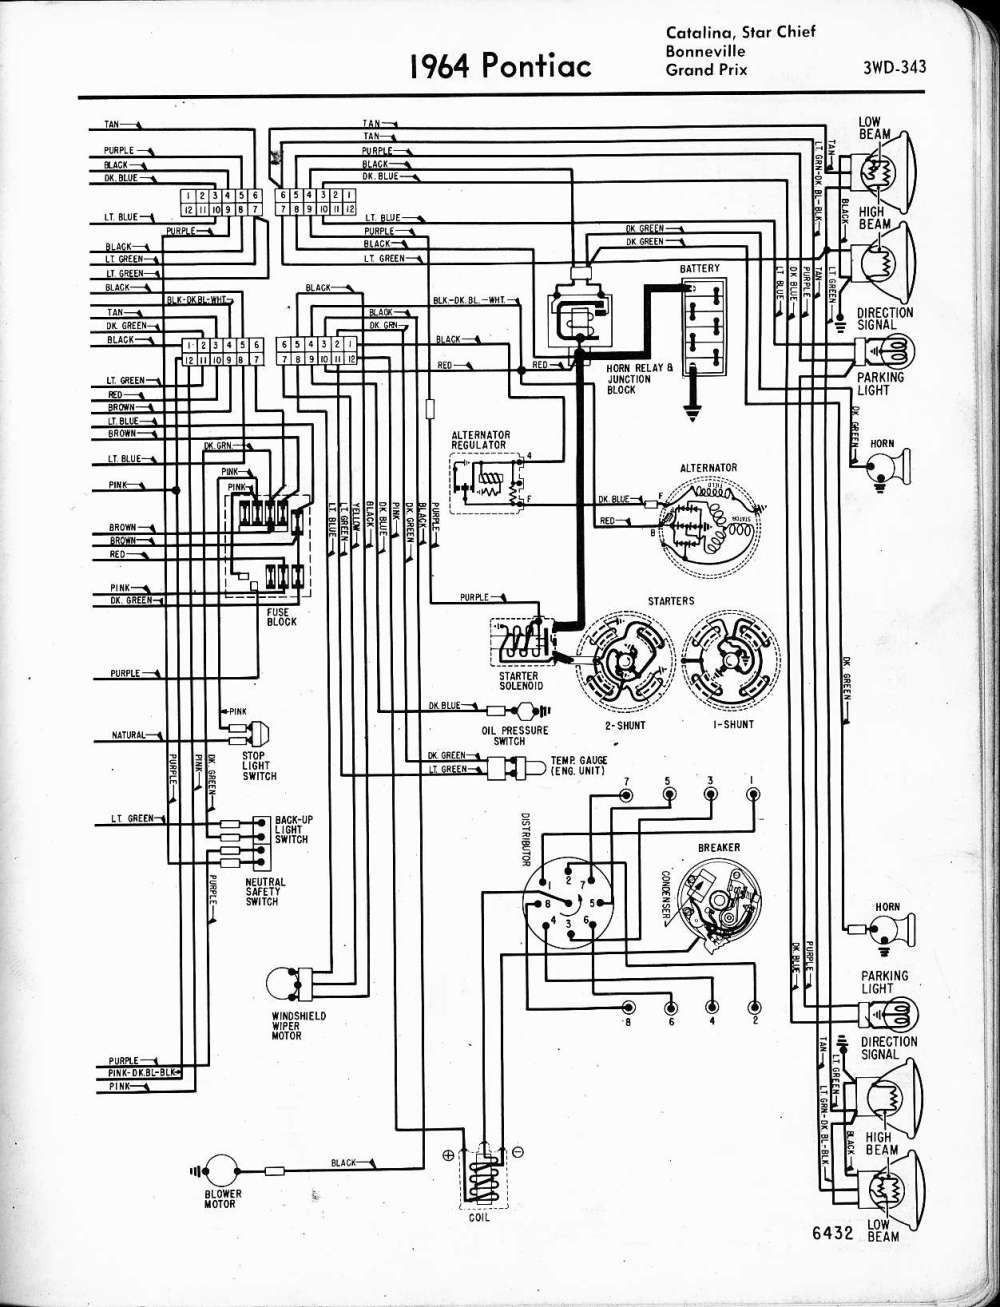 medium resolution of wallace racing wiring diagrams jaguar wiring diagram 1964 catalina star chief bonneville